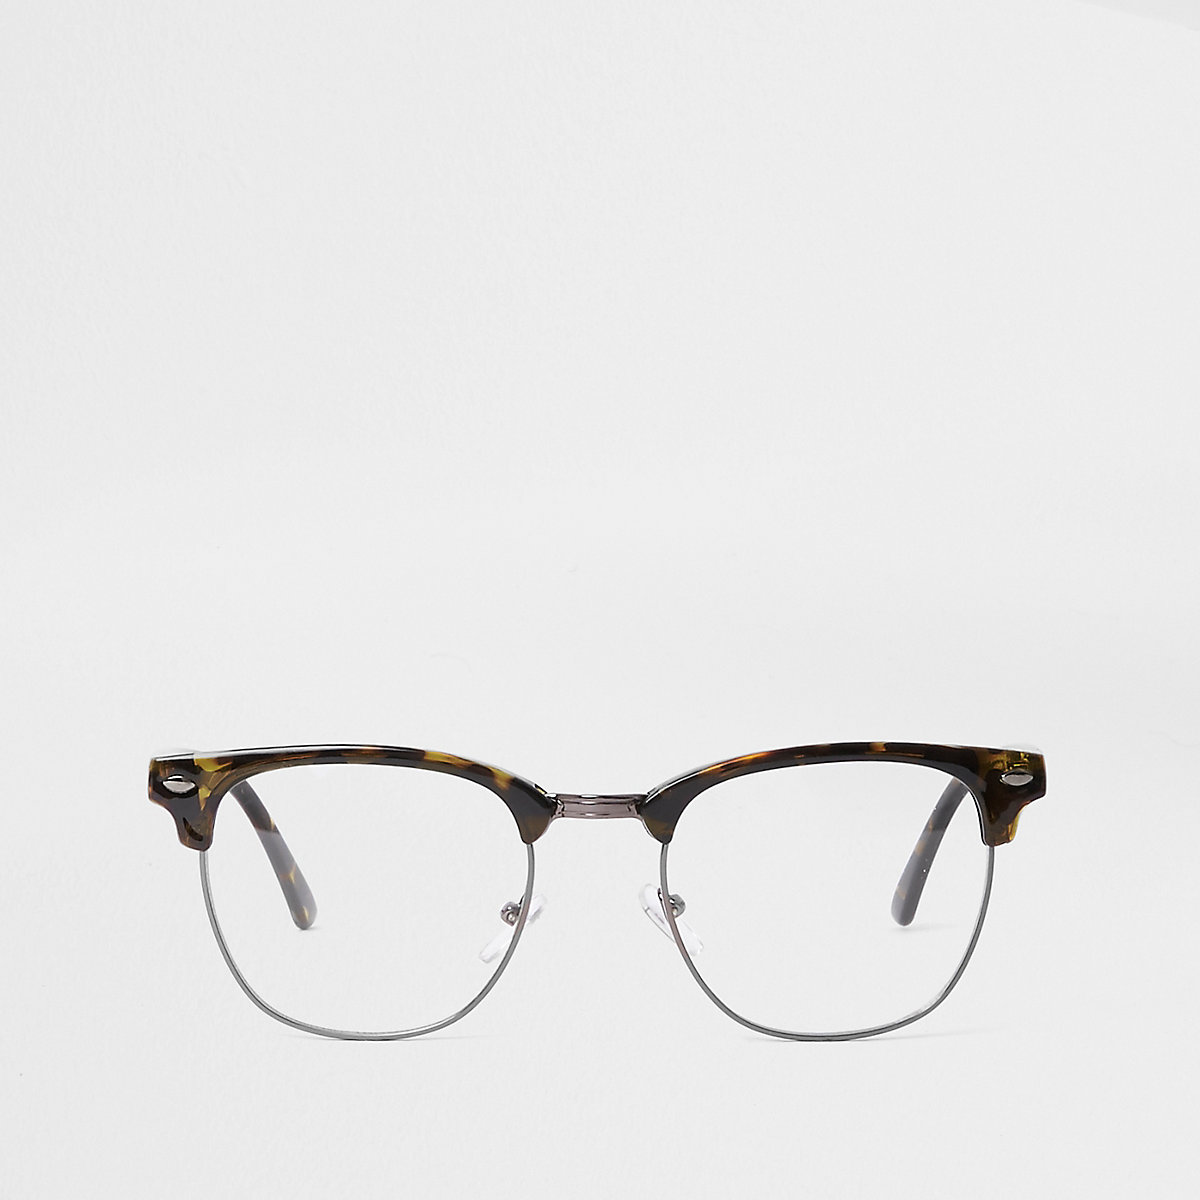 Brown tortoiseshell clear lens glasses